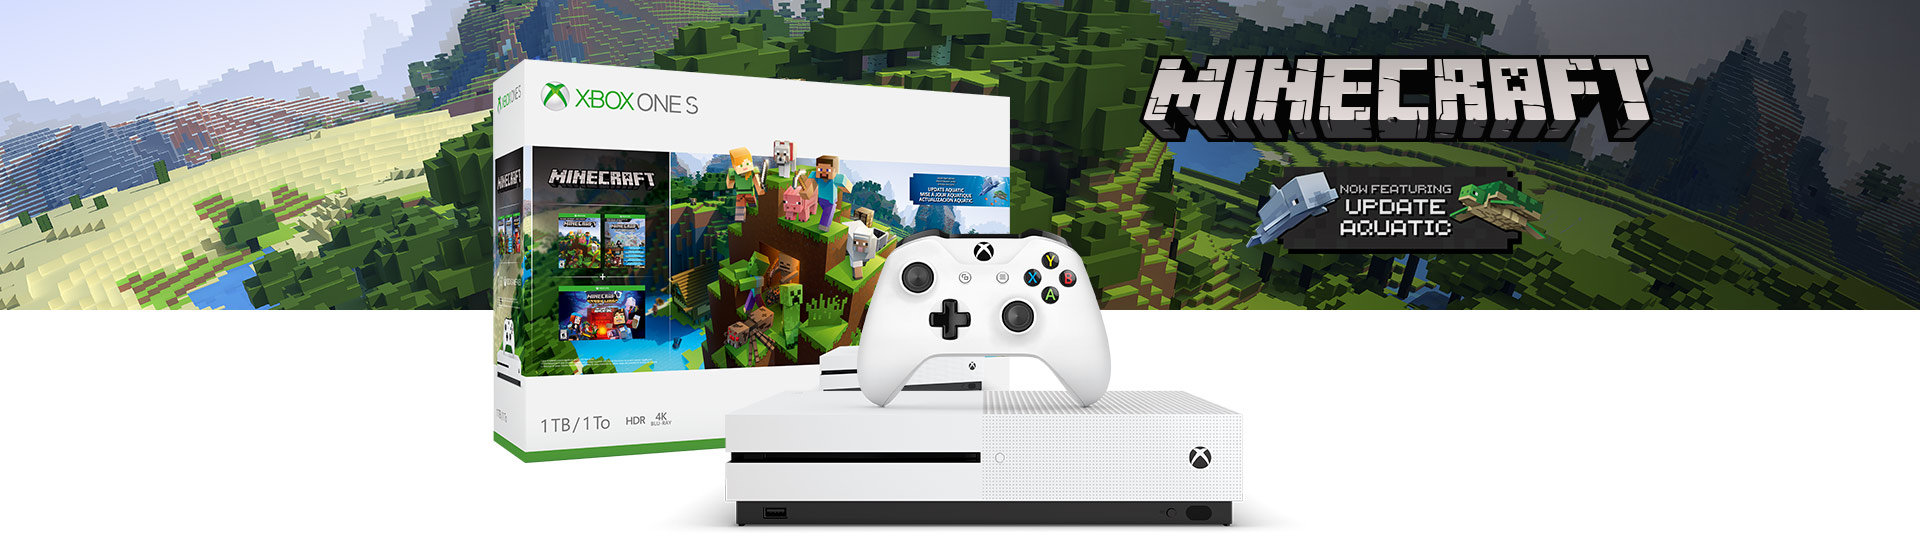 Xbox One S Aquatic Bundle 1 TB